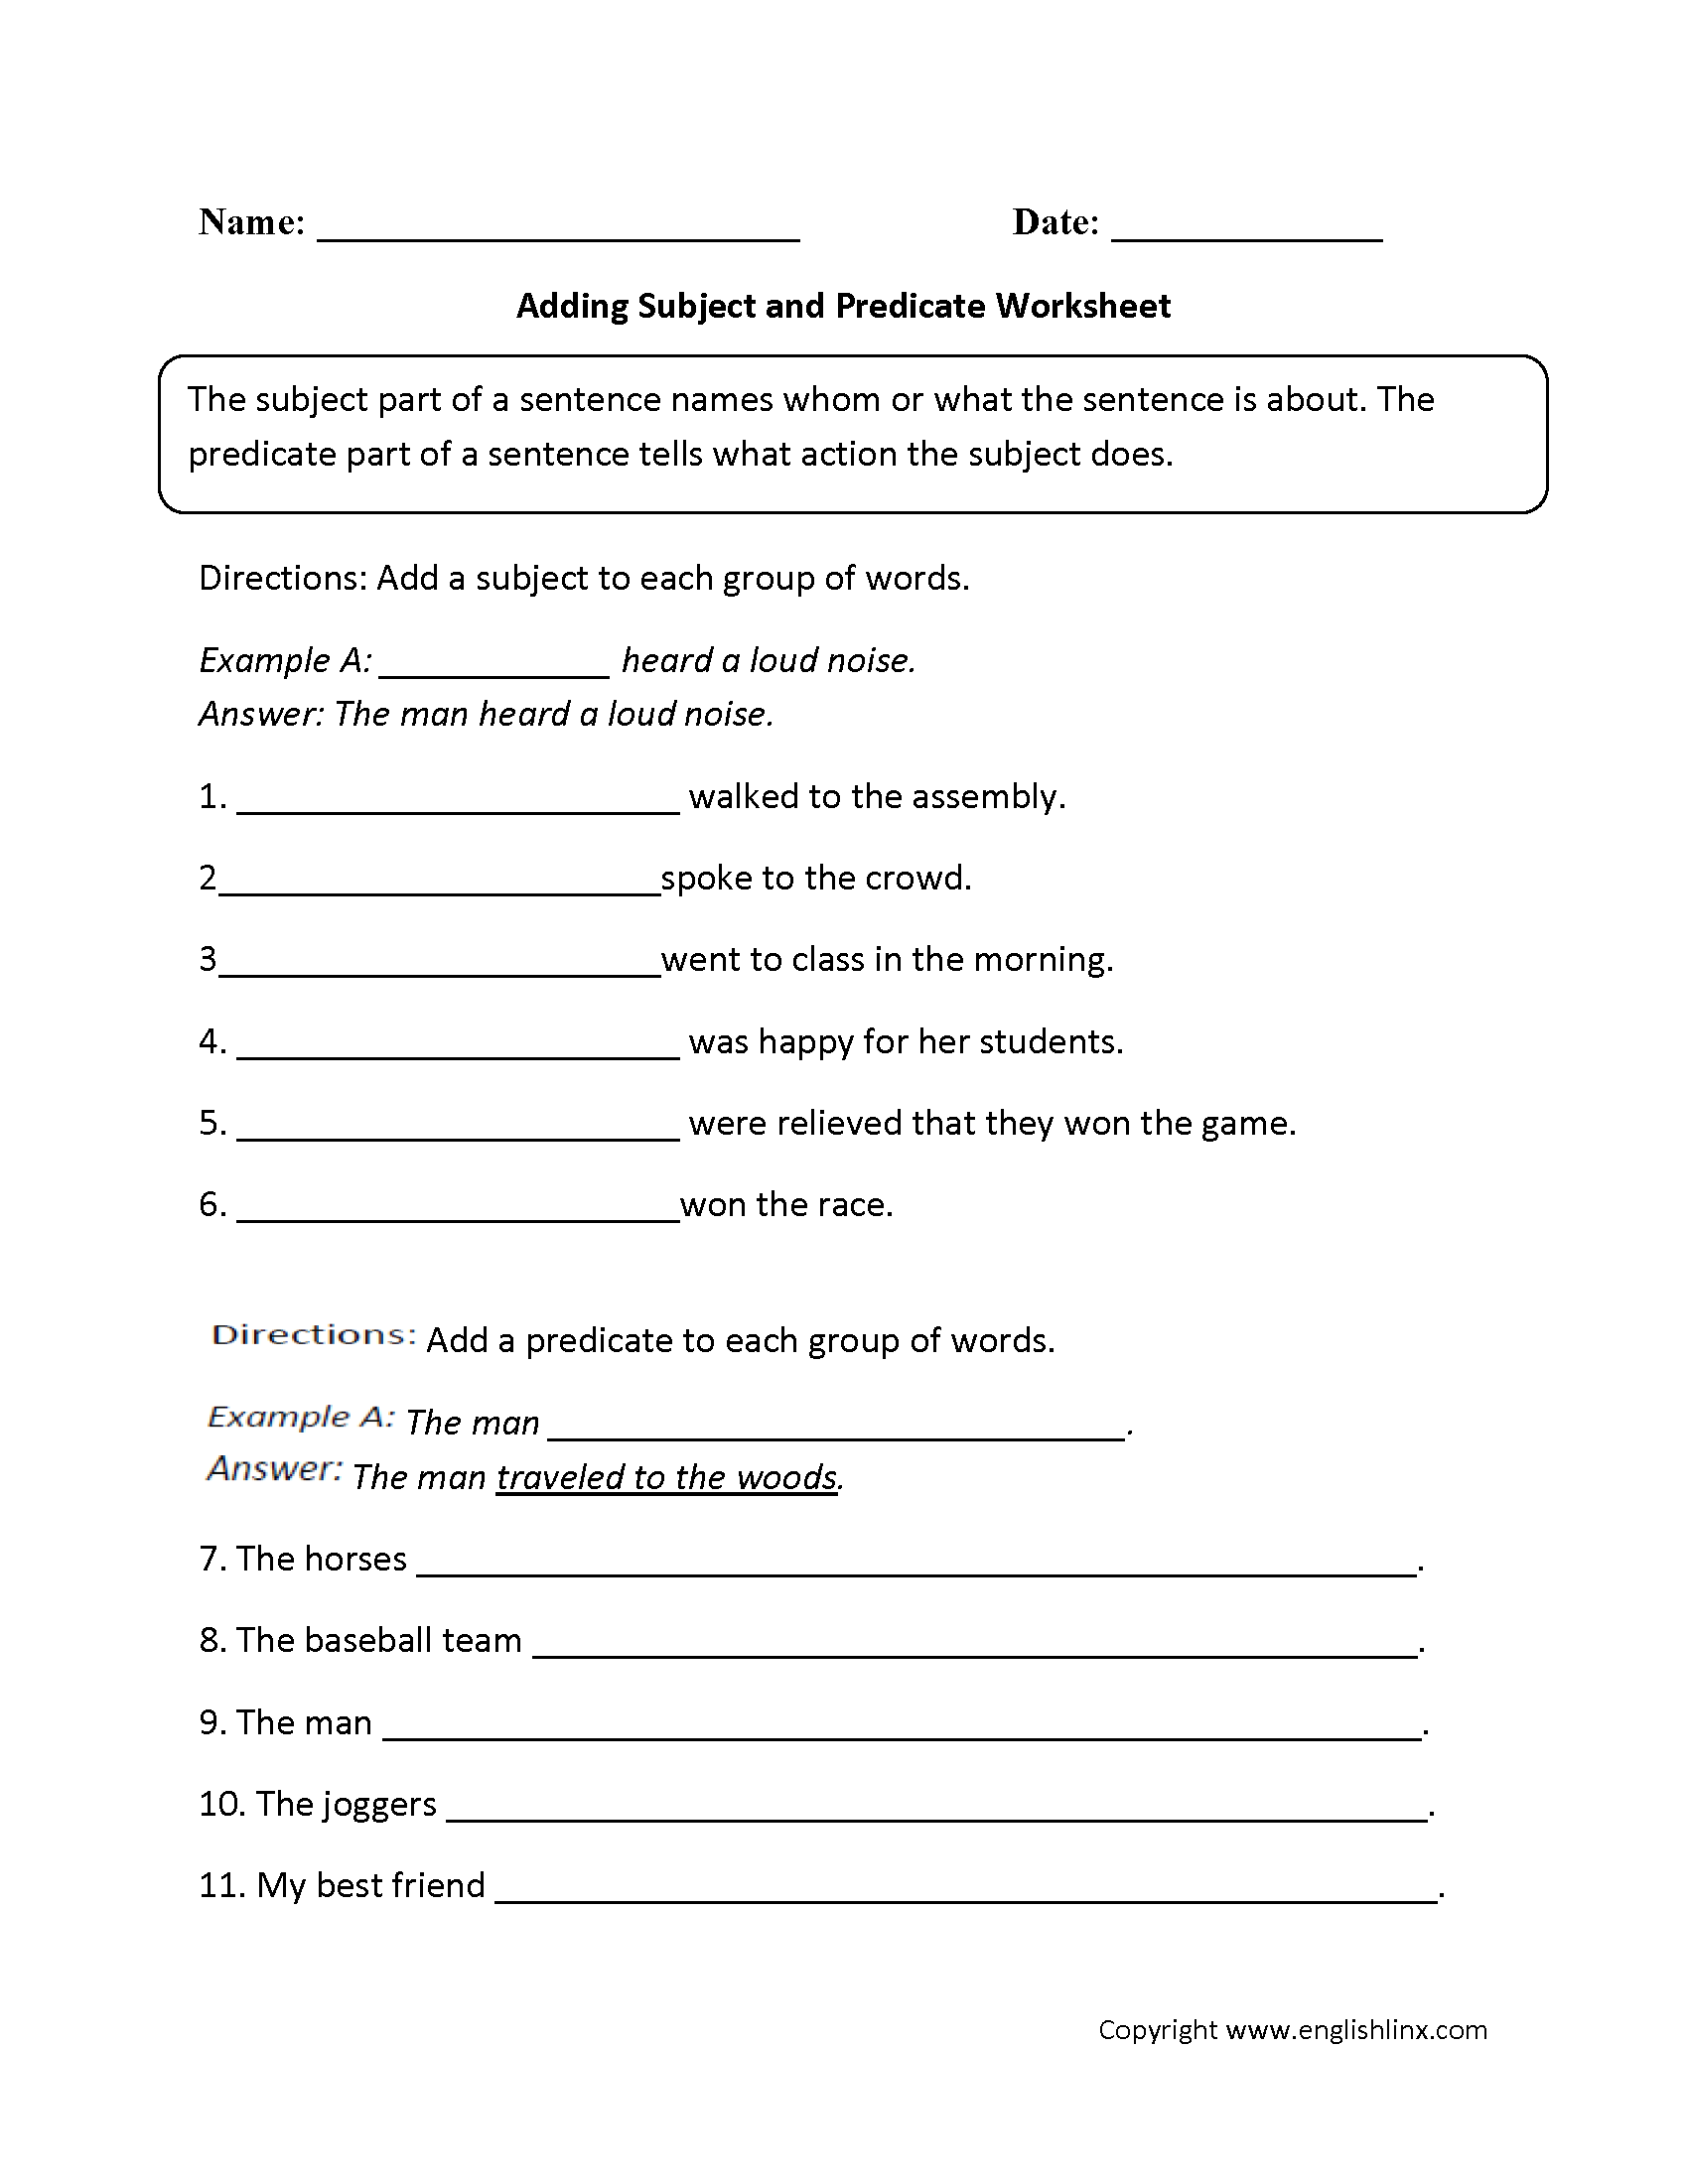 Free Worksheet Grammar Worksheets For 5th Grade parts of a sentence worksheets englishlinx com board pinterest worksheets